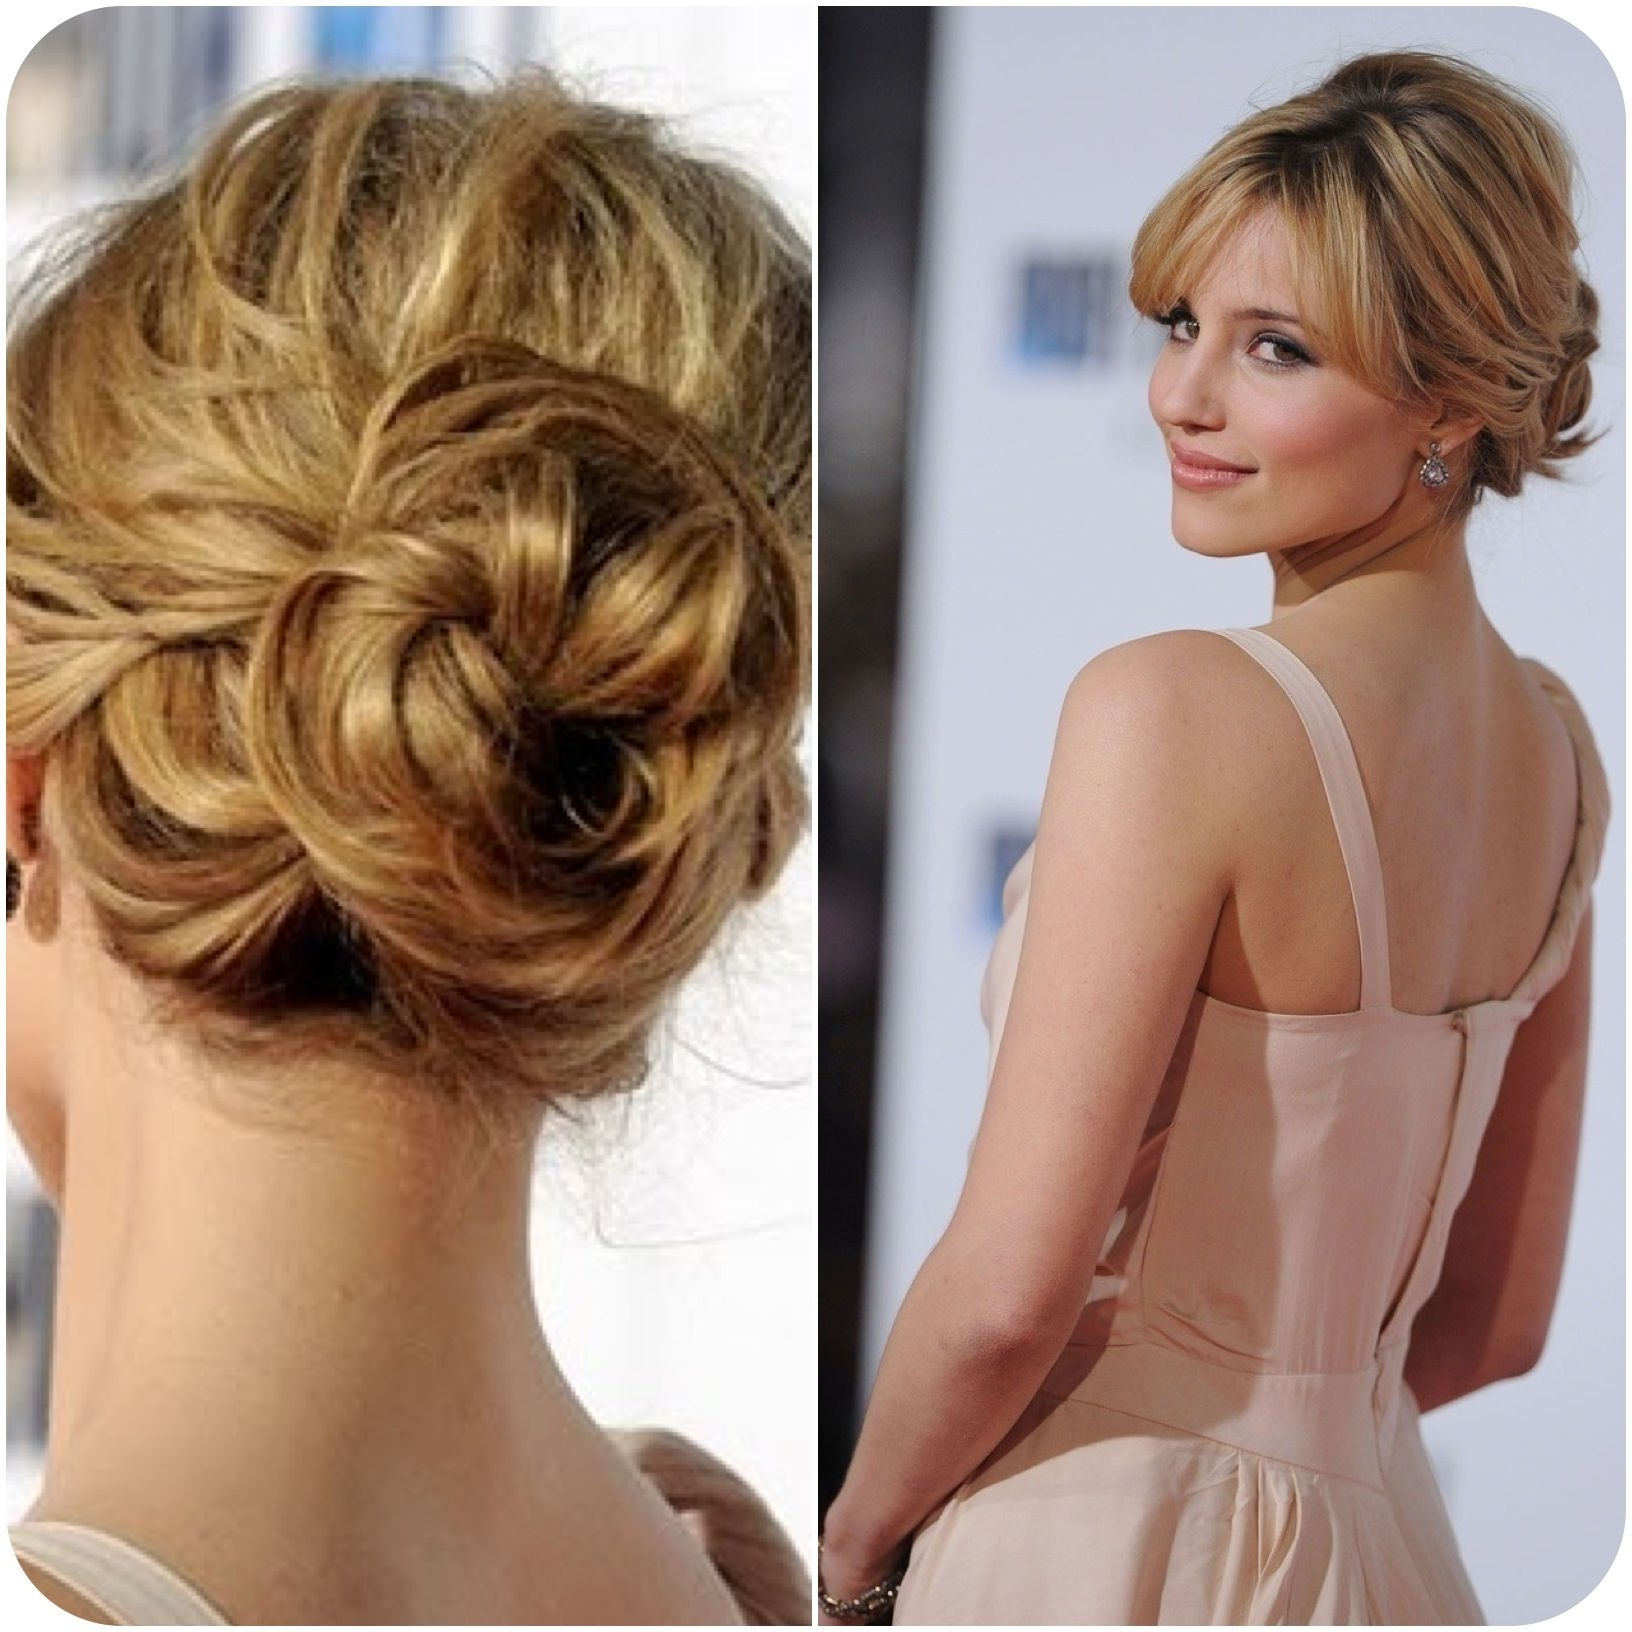 Dianna Agron Romantic Updo With Bangs | Hair | Pinterest | Dianna Throughout Romantic Updo Hairstyles (View 8 of 15)